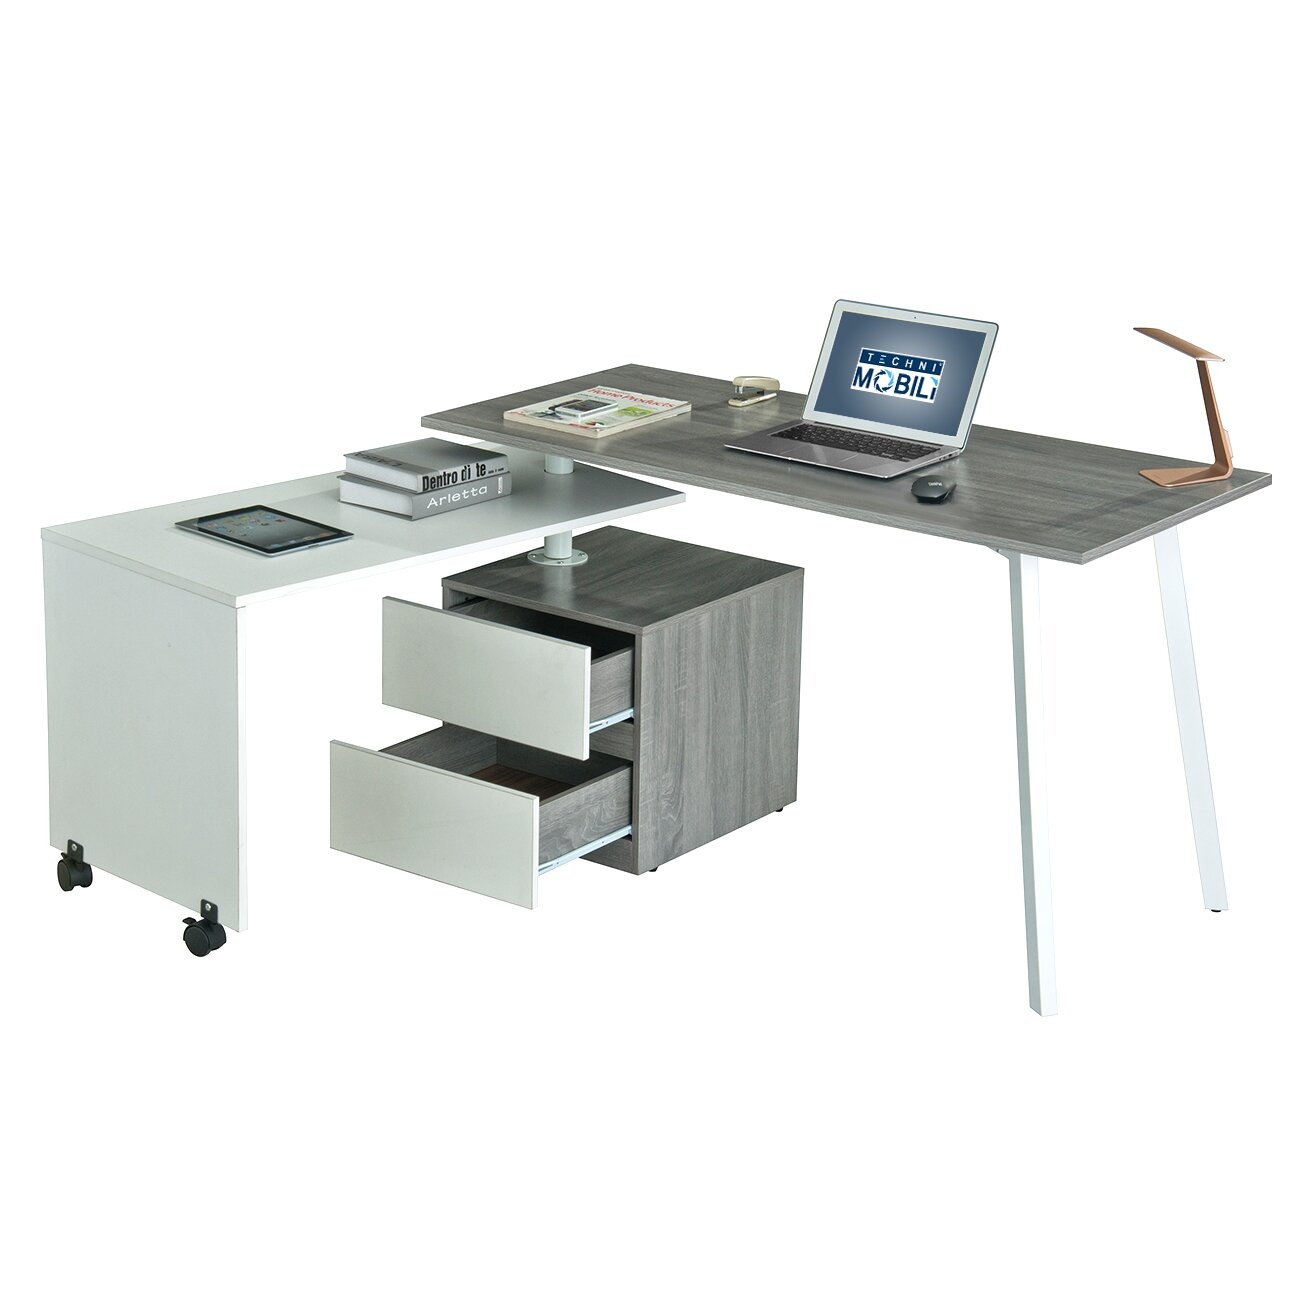 rta multifunction computer techni mobili main contemporary rtap image desk products